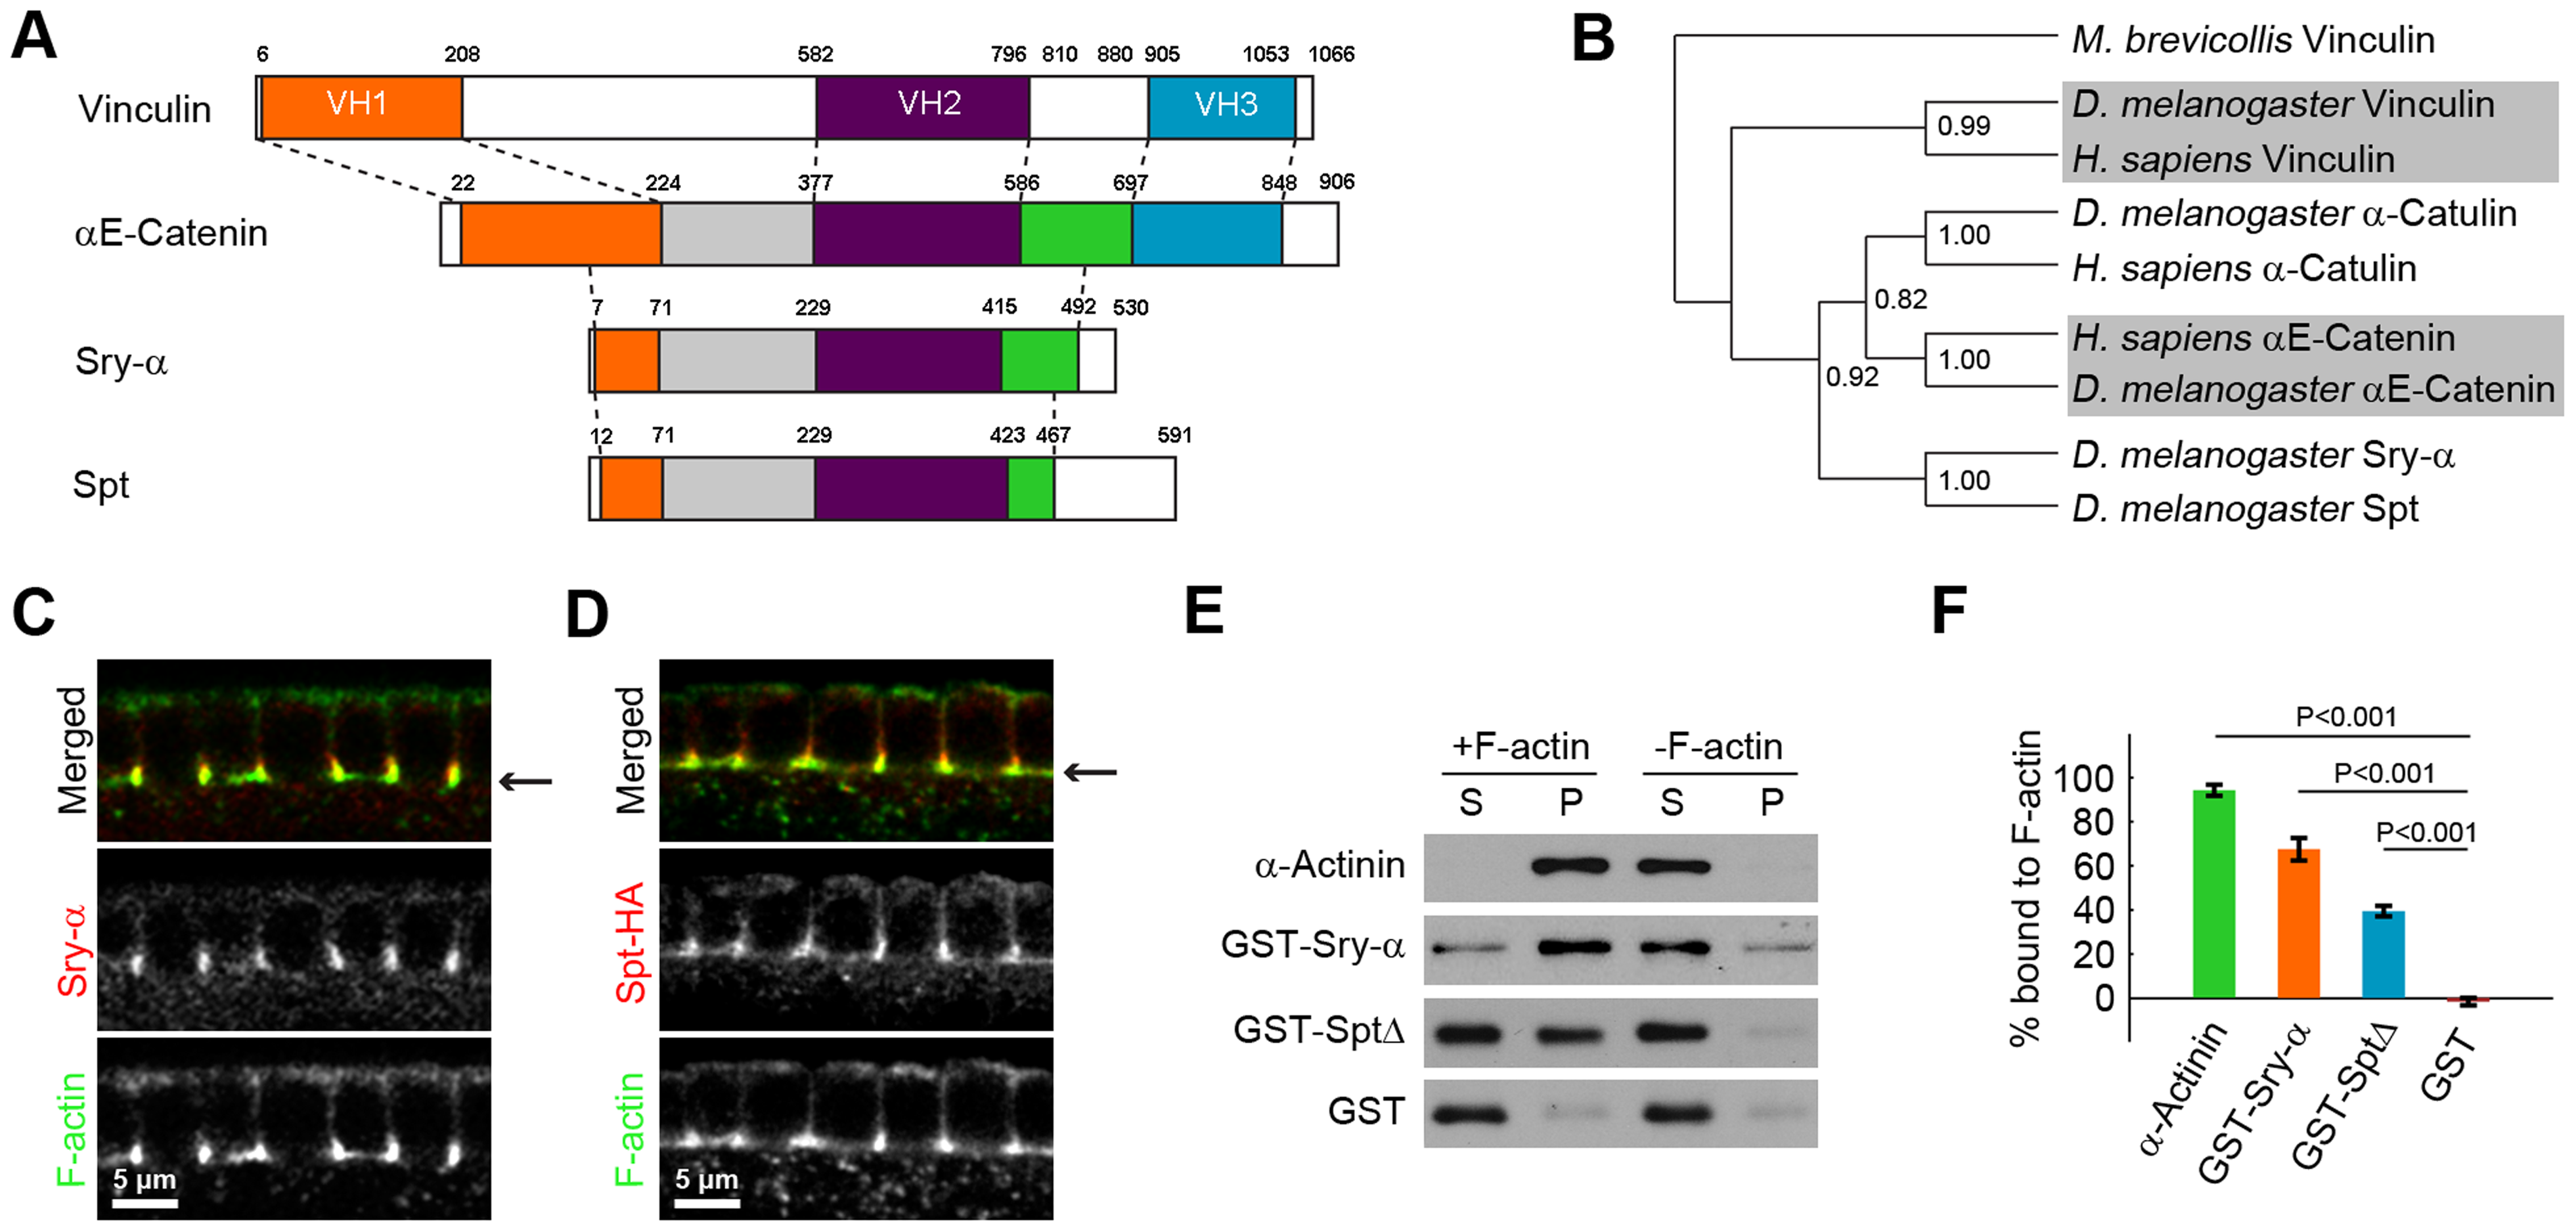 Sry-α and Spt are paralogs with redundant F-actin binding activity.